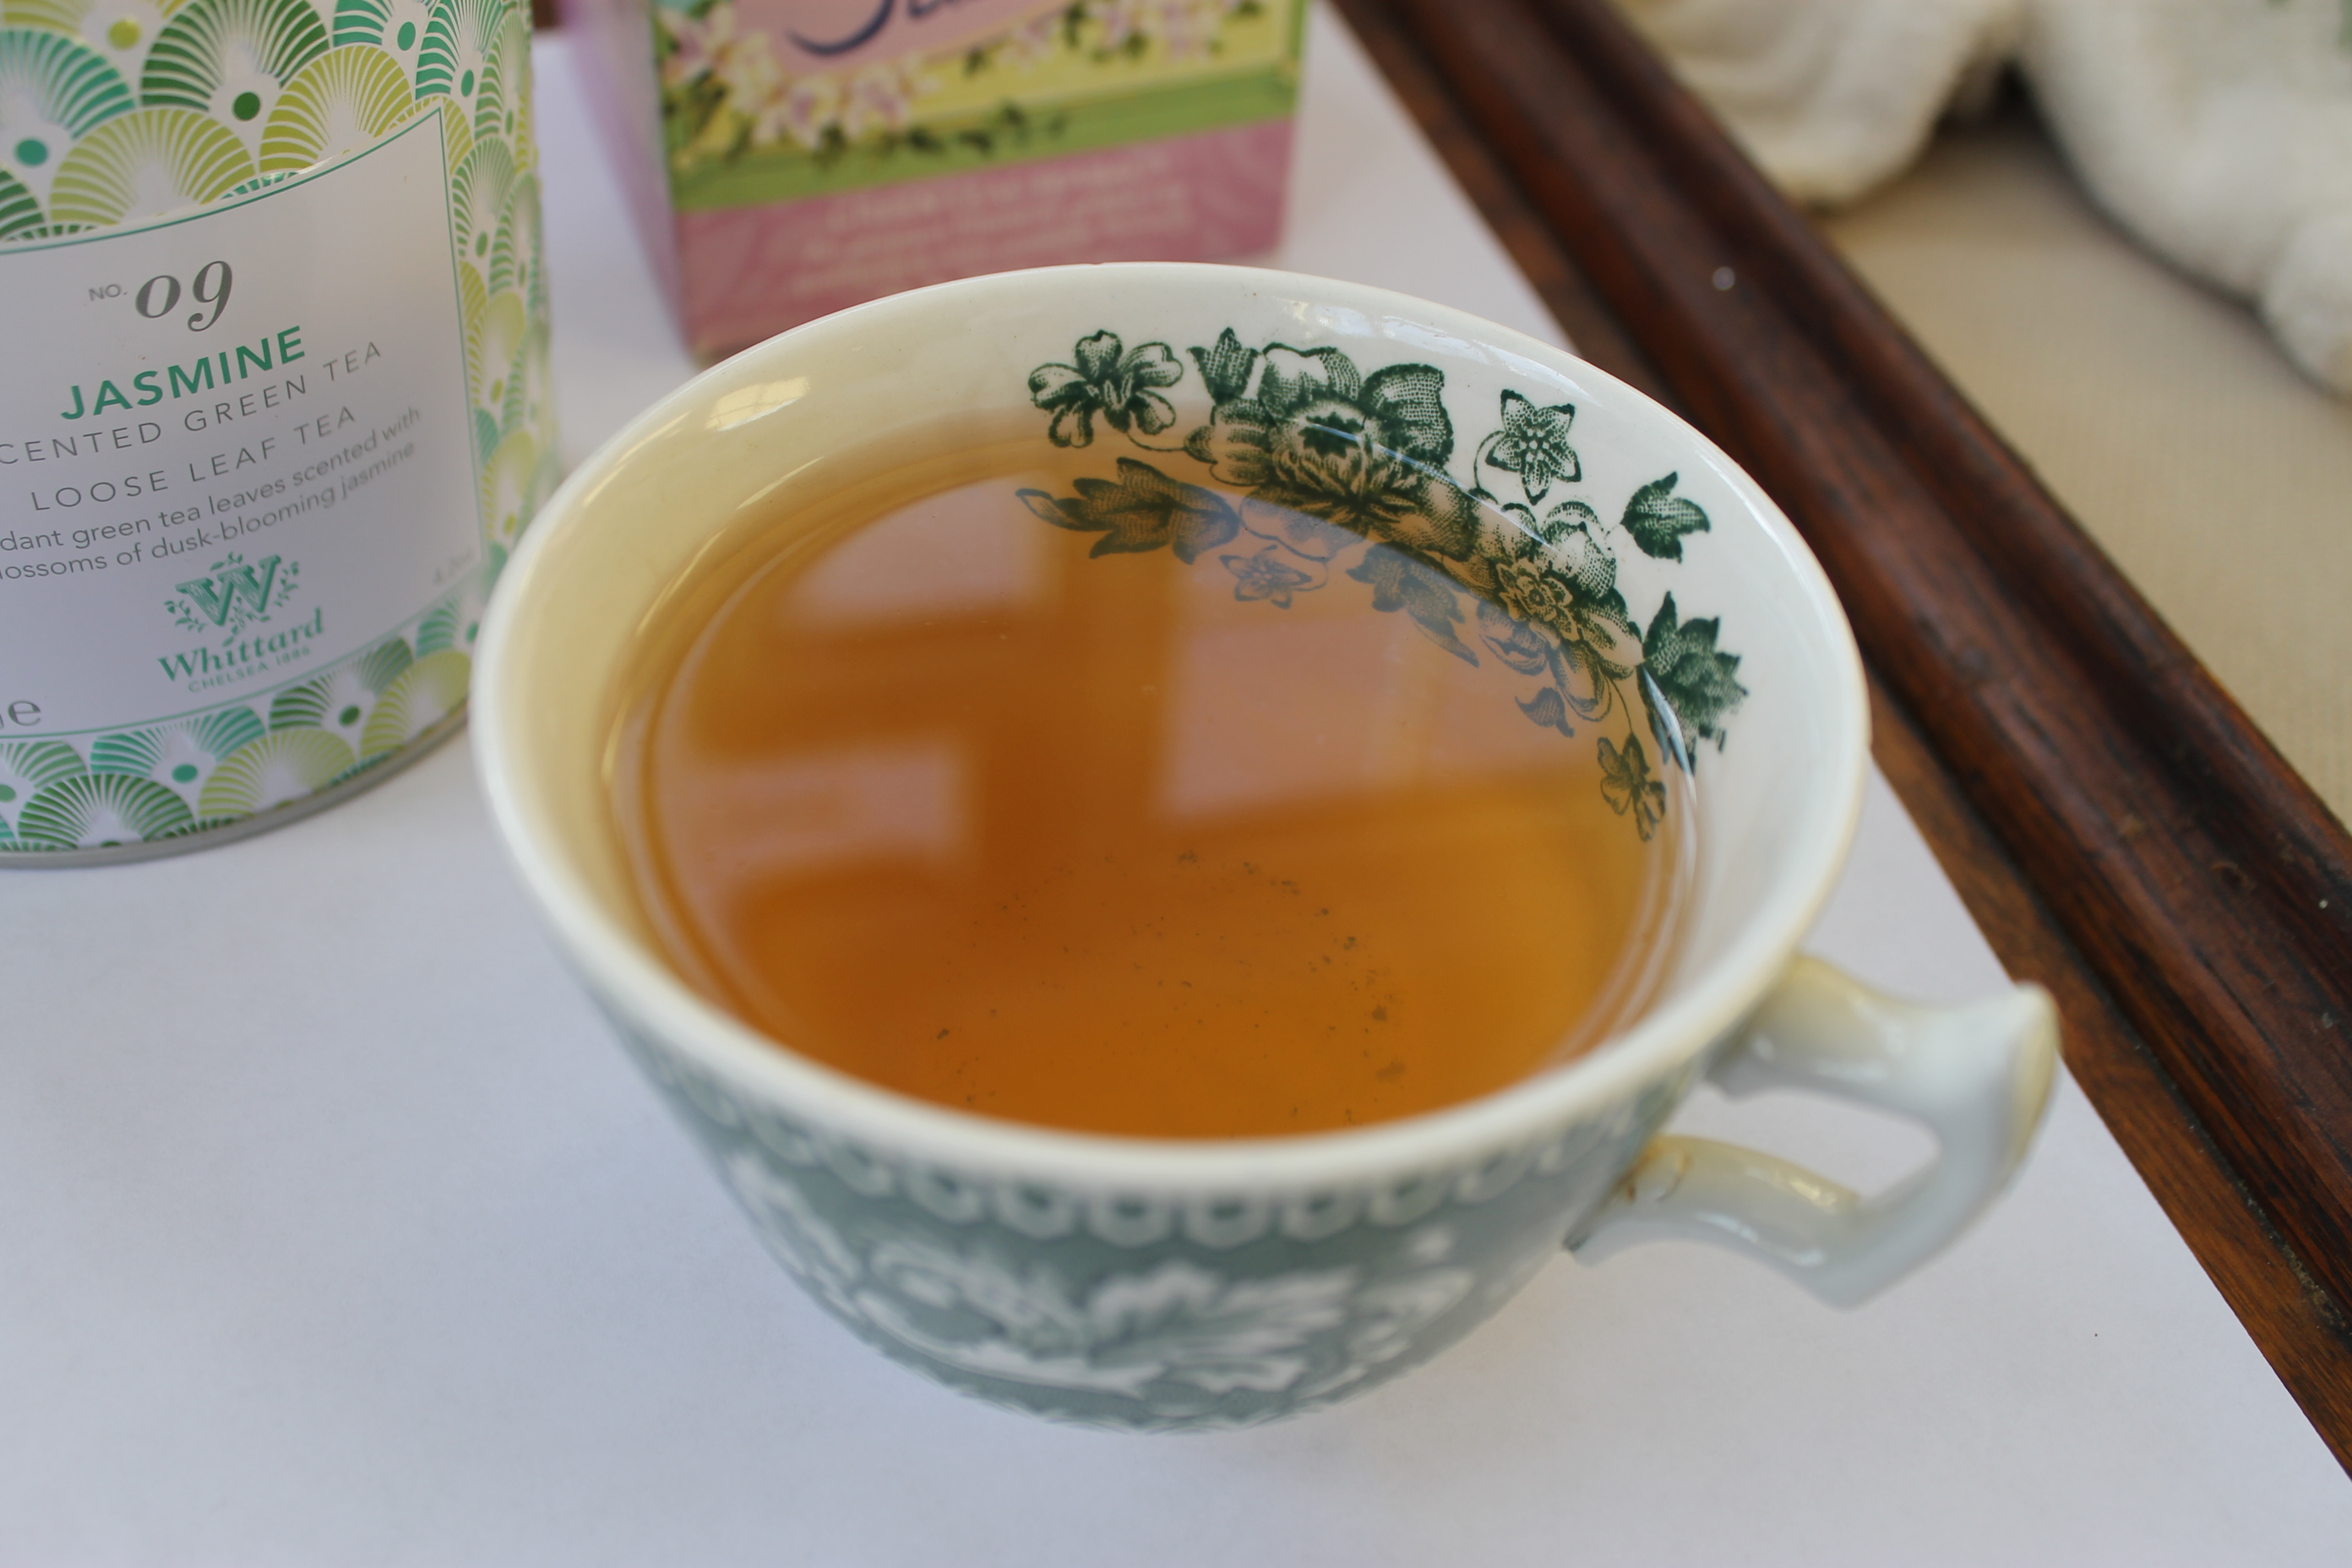 Chinese jasmine green tea from Whittard